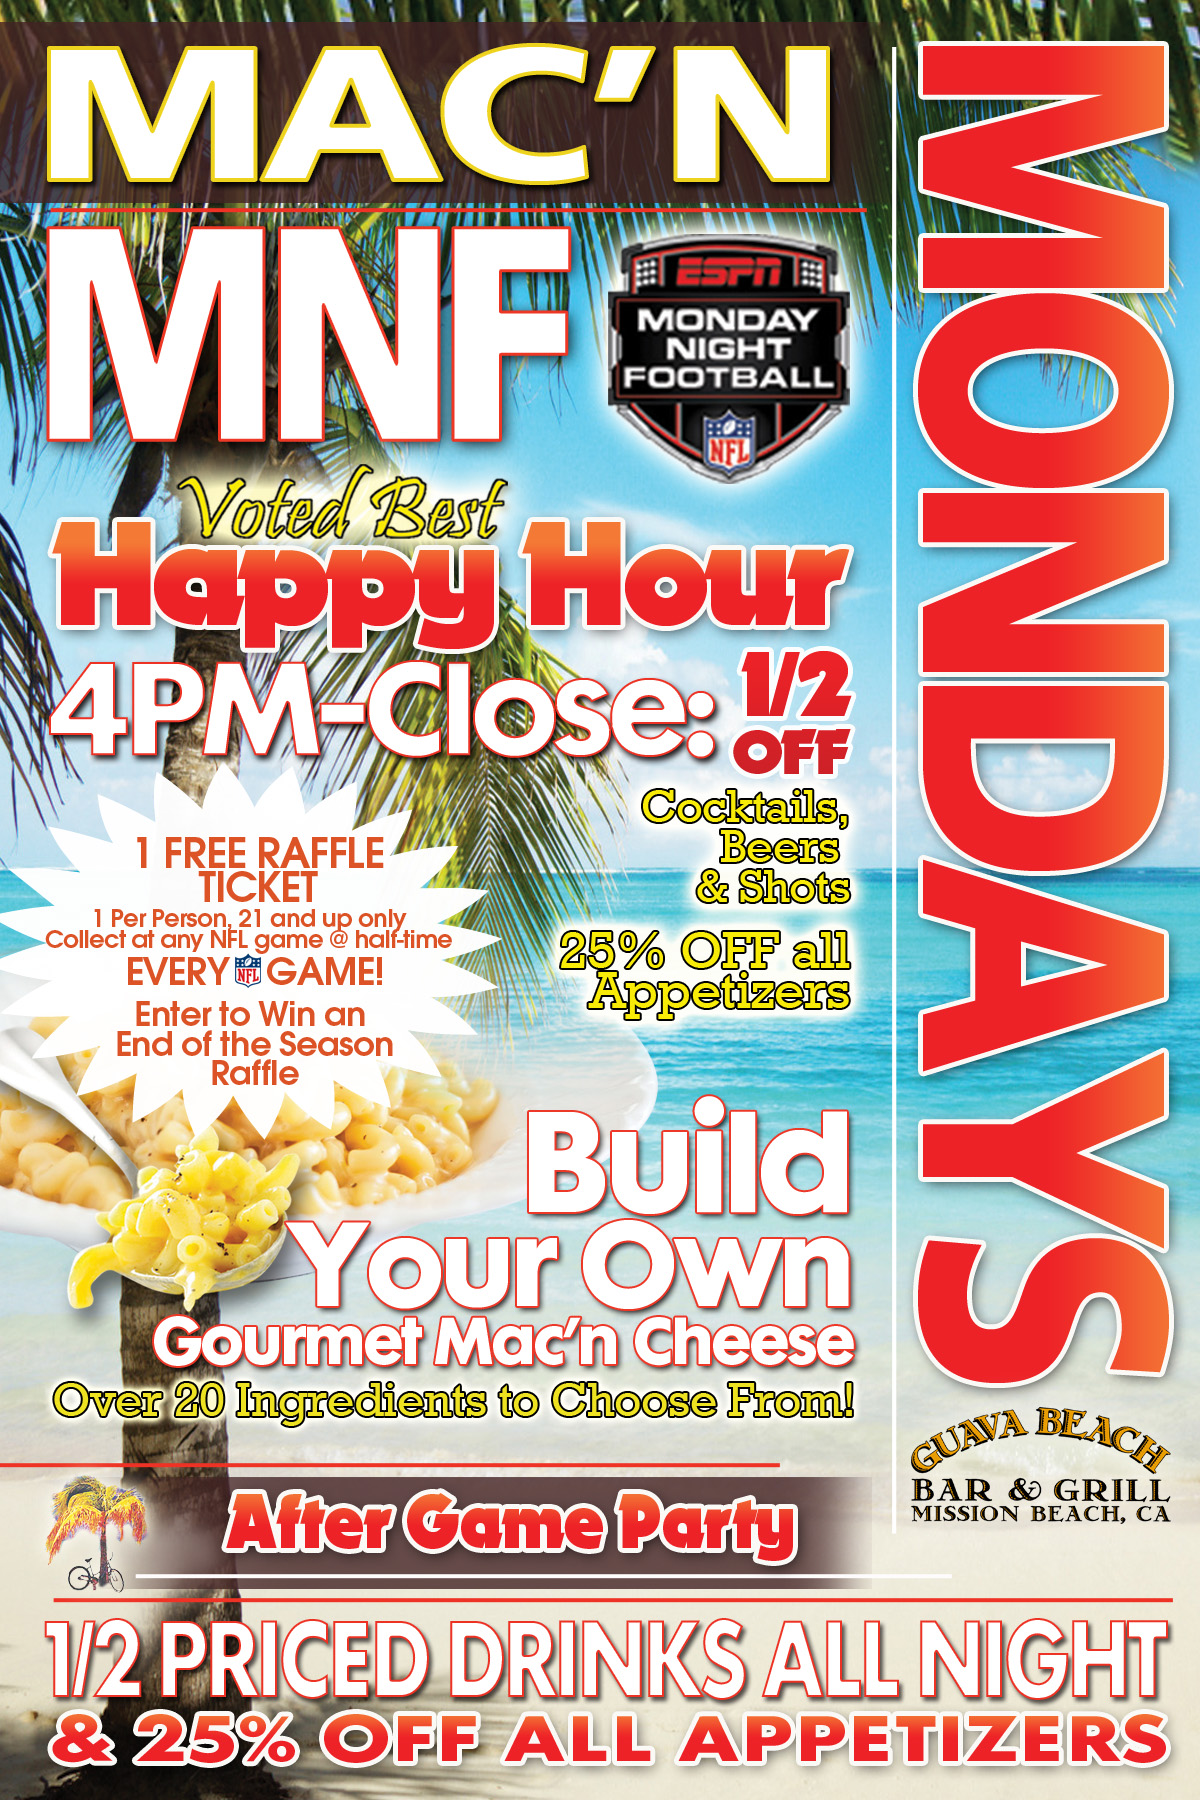 Sports bar mission beach bar grill daily specials nvjuhfo Image collections